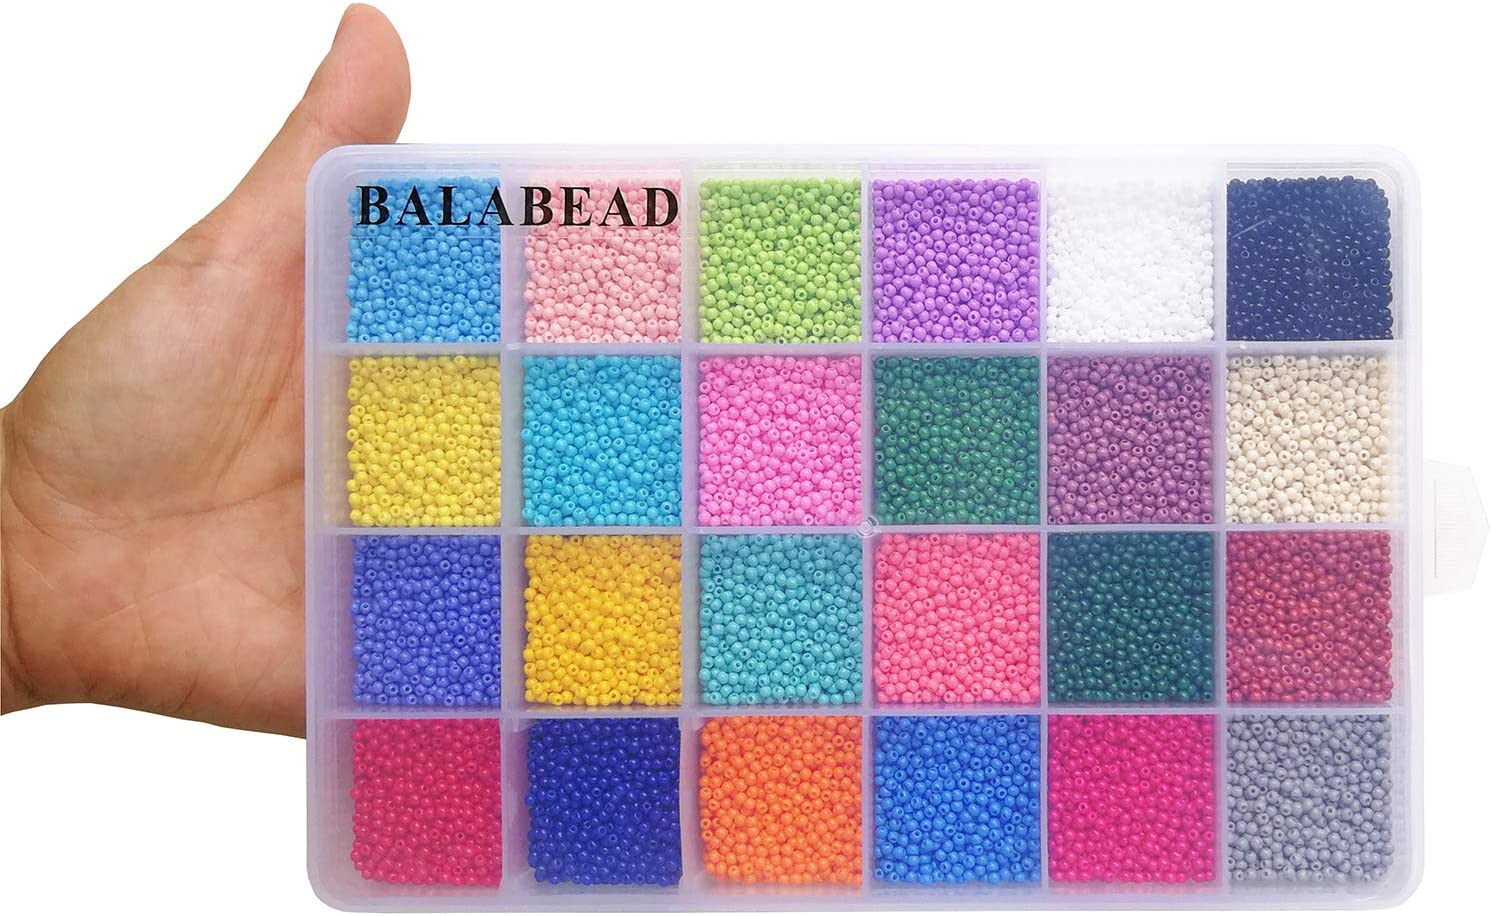 700pcs//Color, 24 Colors About 16800pcs 24 Multicolor Assortment in Box Size 12//0 Seed Beads for Jewelry Making BALABEAD Size Almost Uniform Craft Glass Seed Beads with Beading Tool